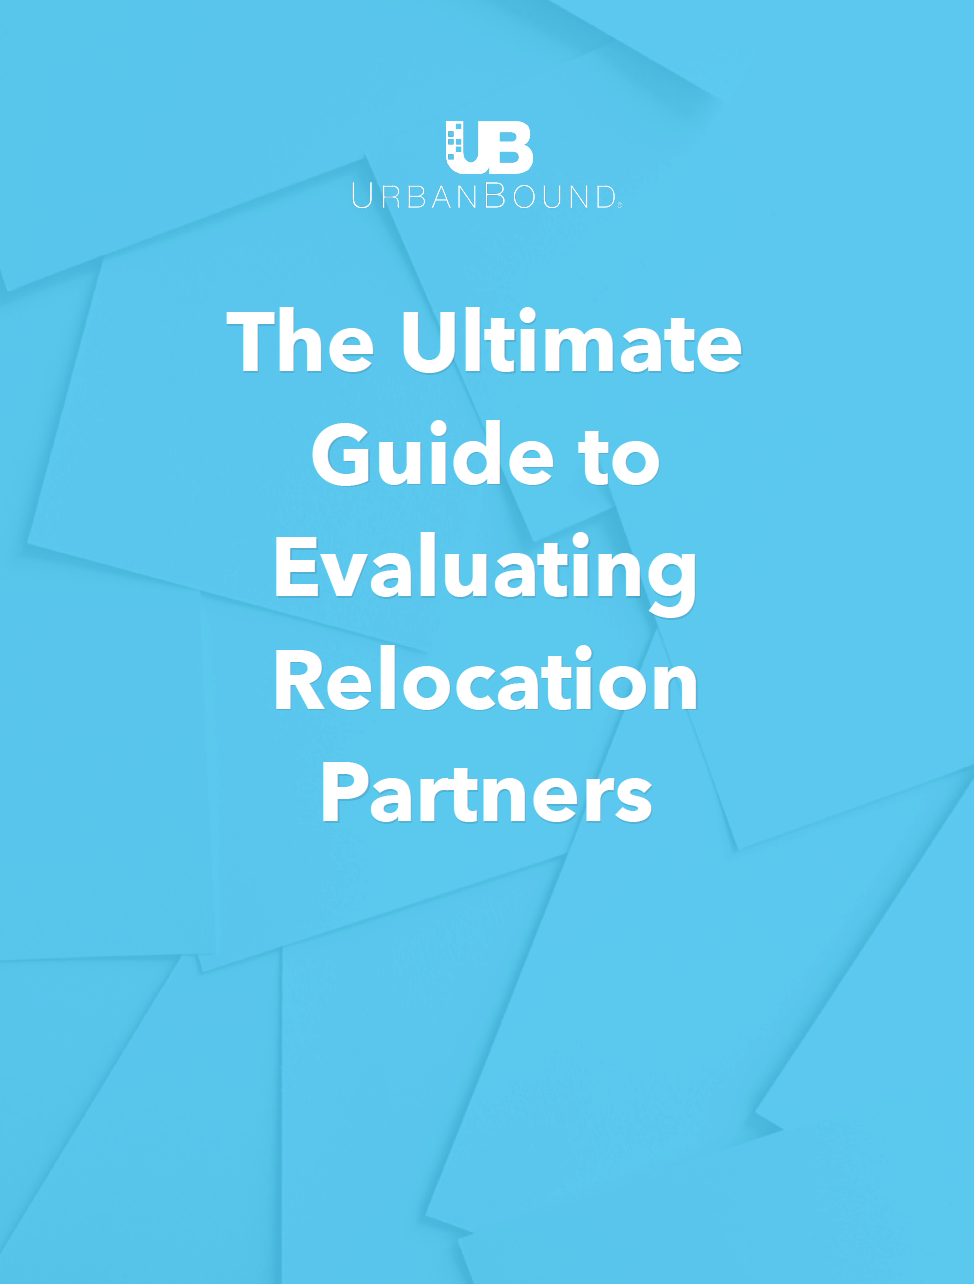 guide to evaluating relocation partners